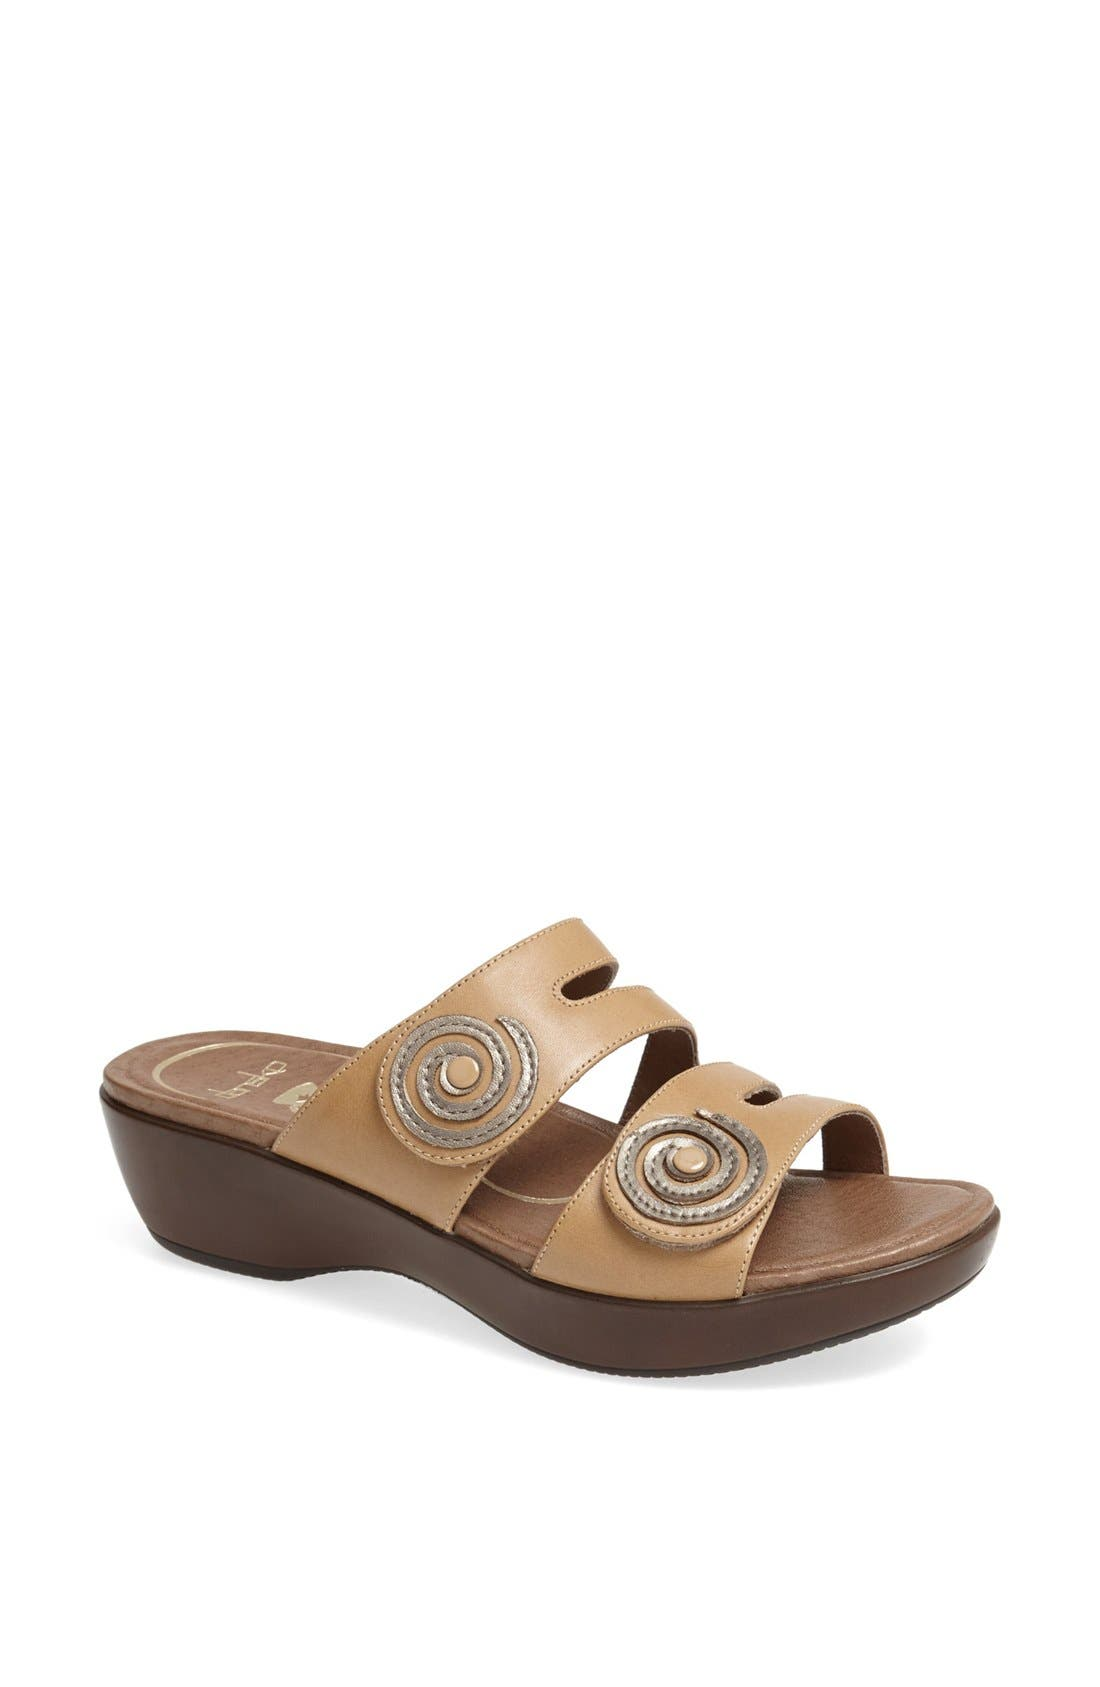 Alternate Image 1 Selected - Dansko 'Dixie' Sandal